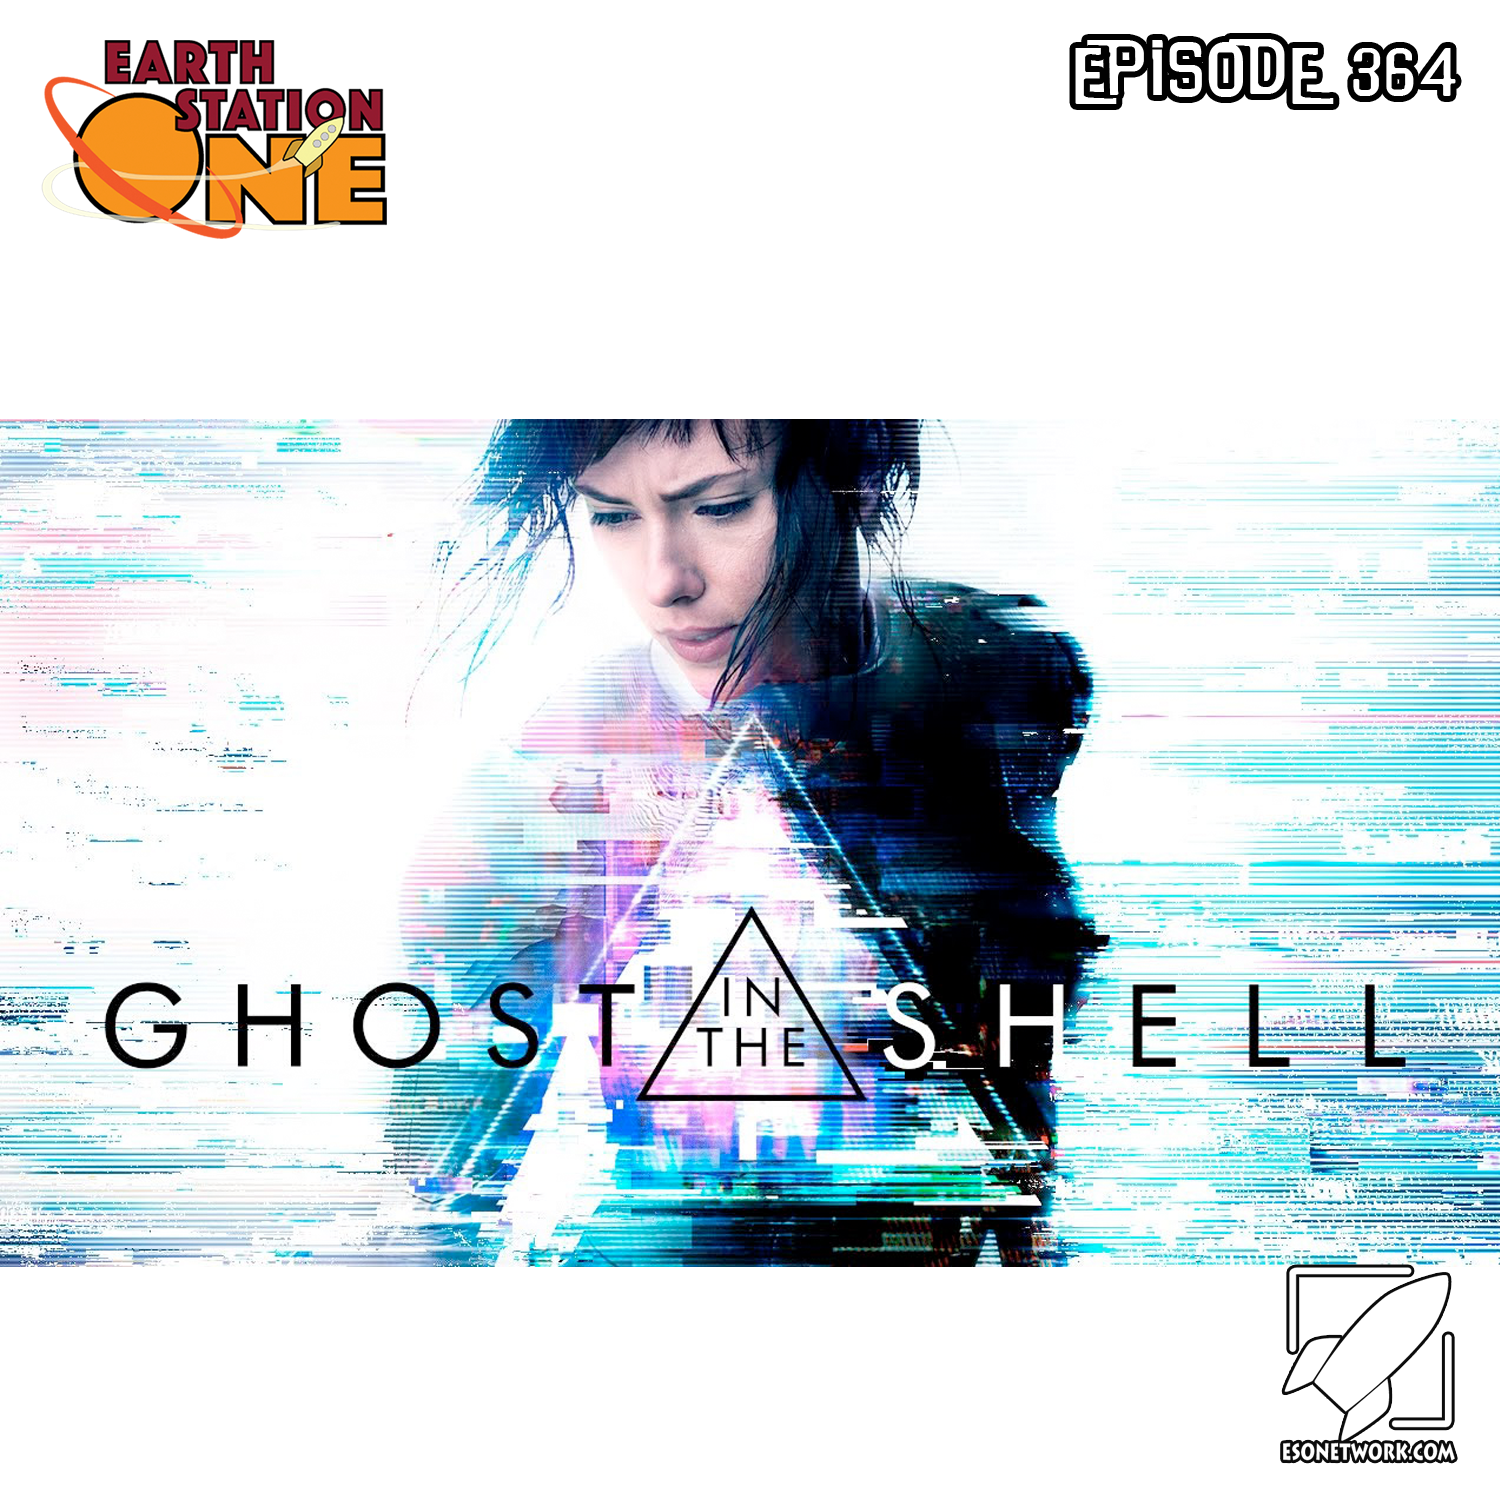 Earth Station One Podcast Ep 364 - Ghost In the Shell